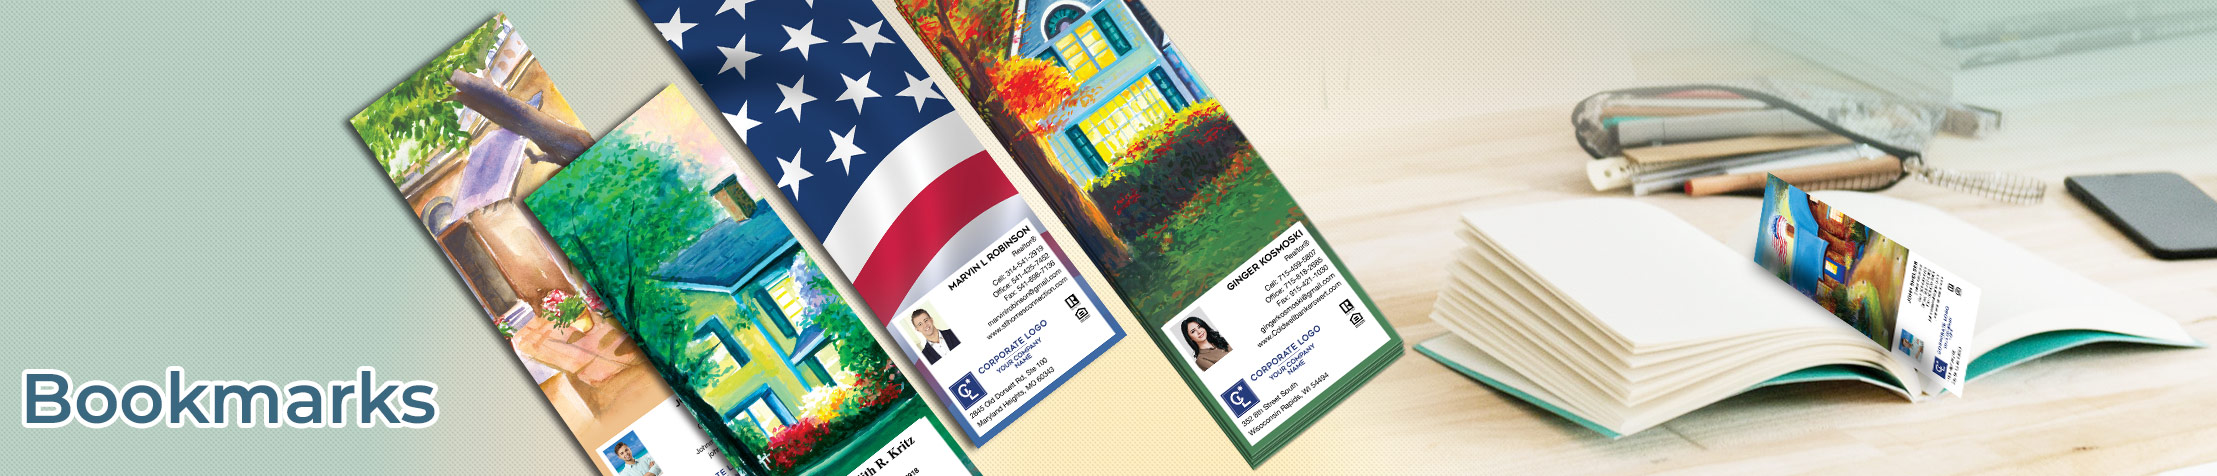 Coldwell Banker Real Estate Bookmarks - Coldwell Banker  custom realtor bookmarks | BestPrintBuy.com